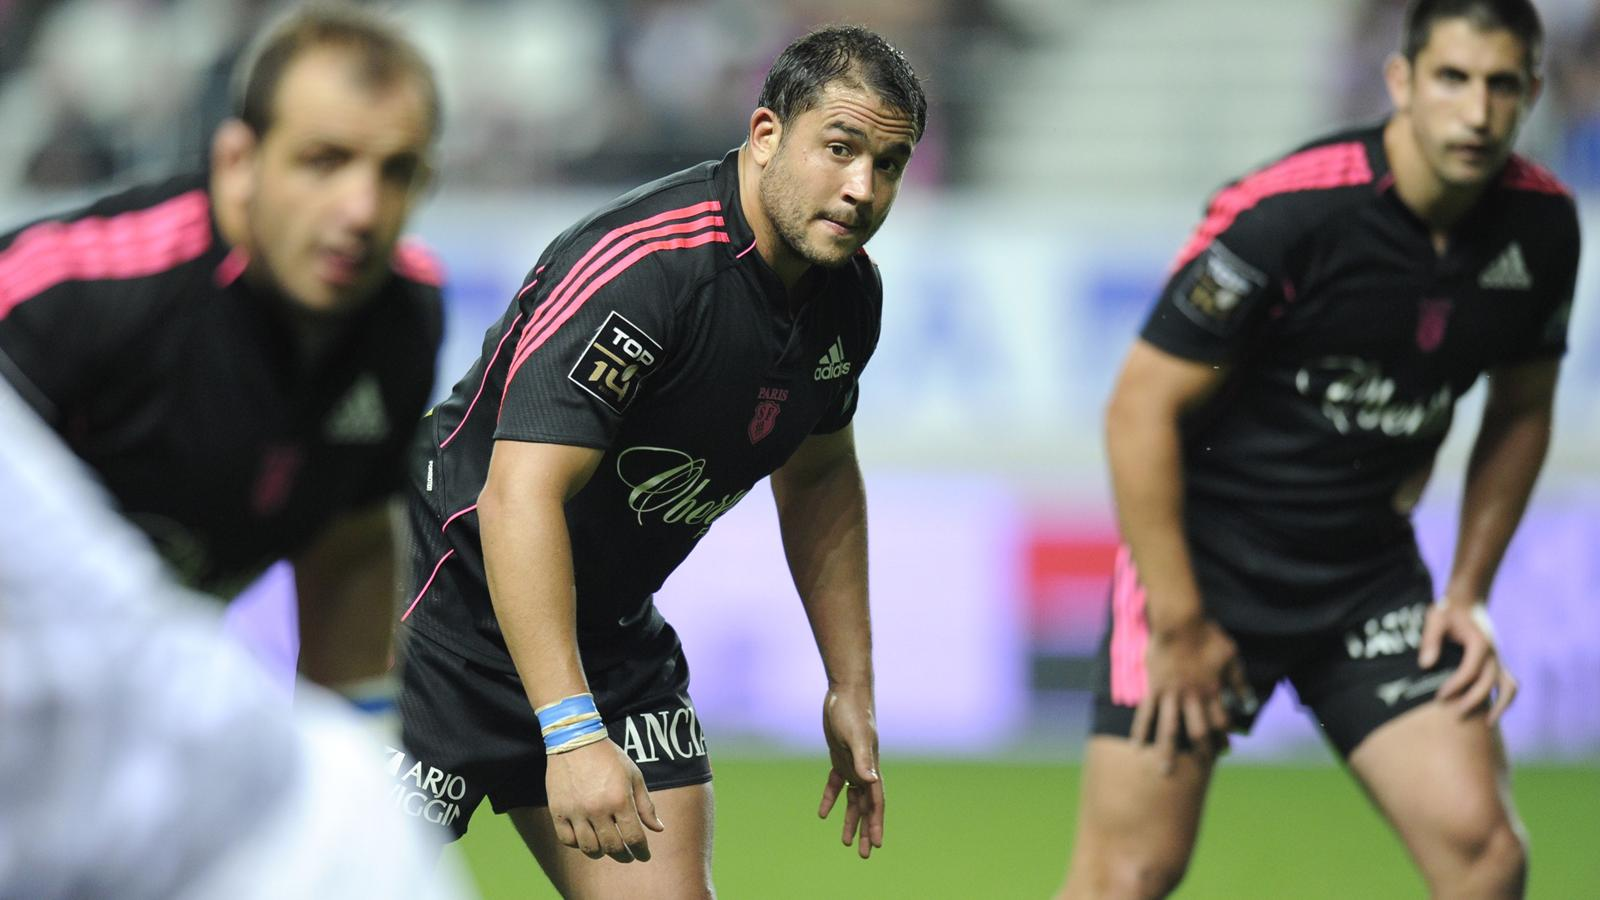 Laurent Sempere - stade français montpellier - 27 septembre 2013